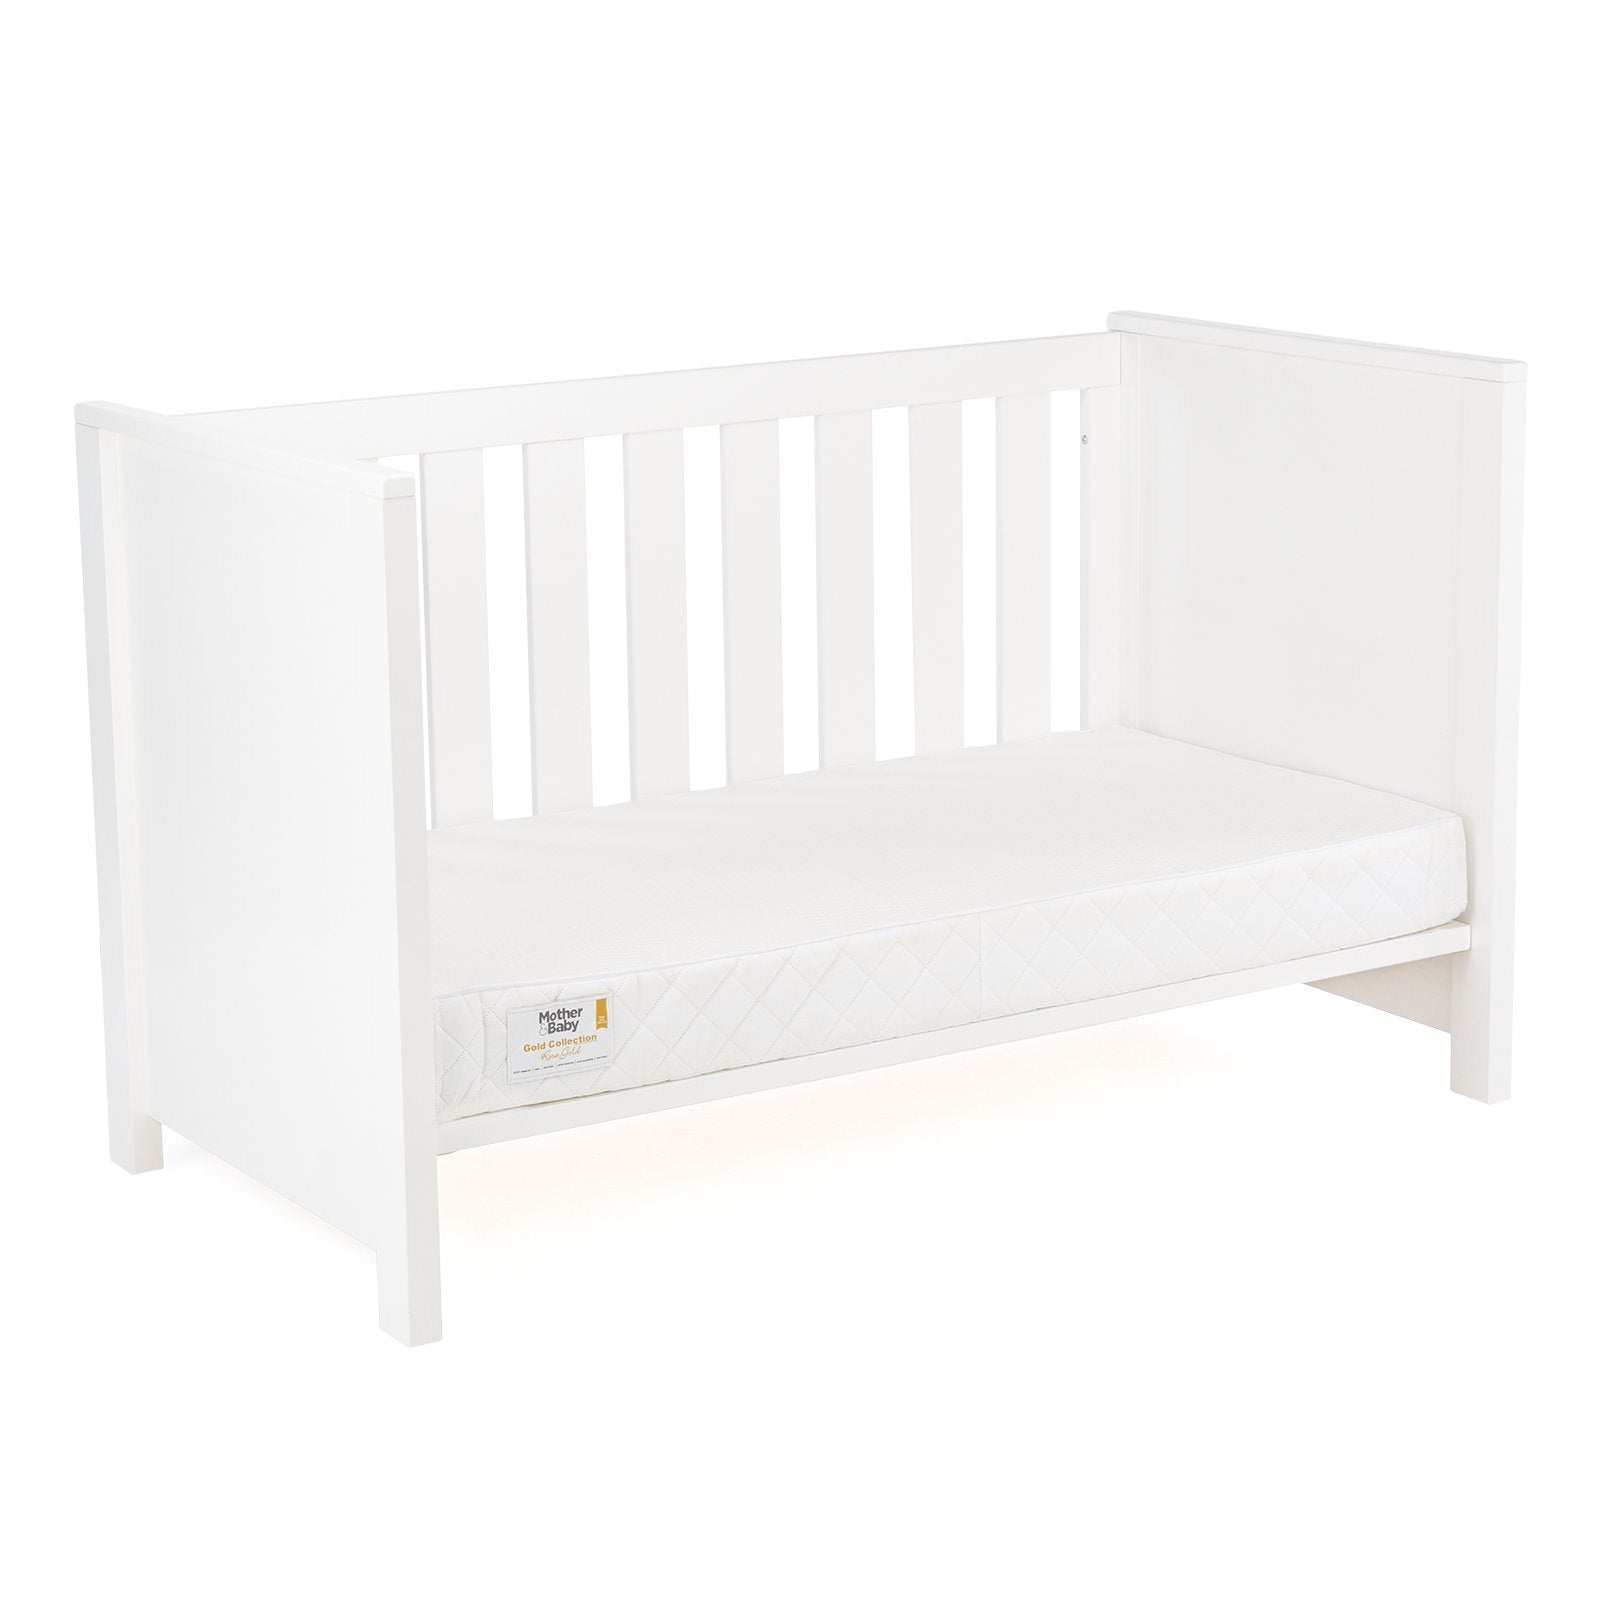 Aylesbury Cot Bed White + Mother&Baby Organic Gold Chemical Free Cot Bed Mattress Furniture CuddleCo